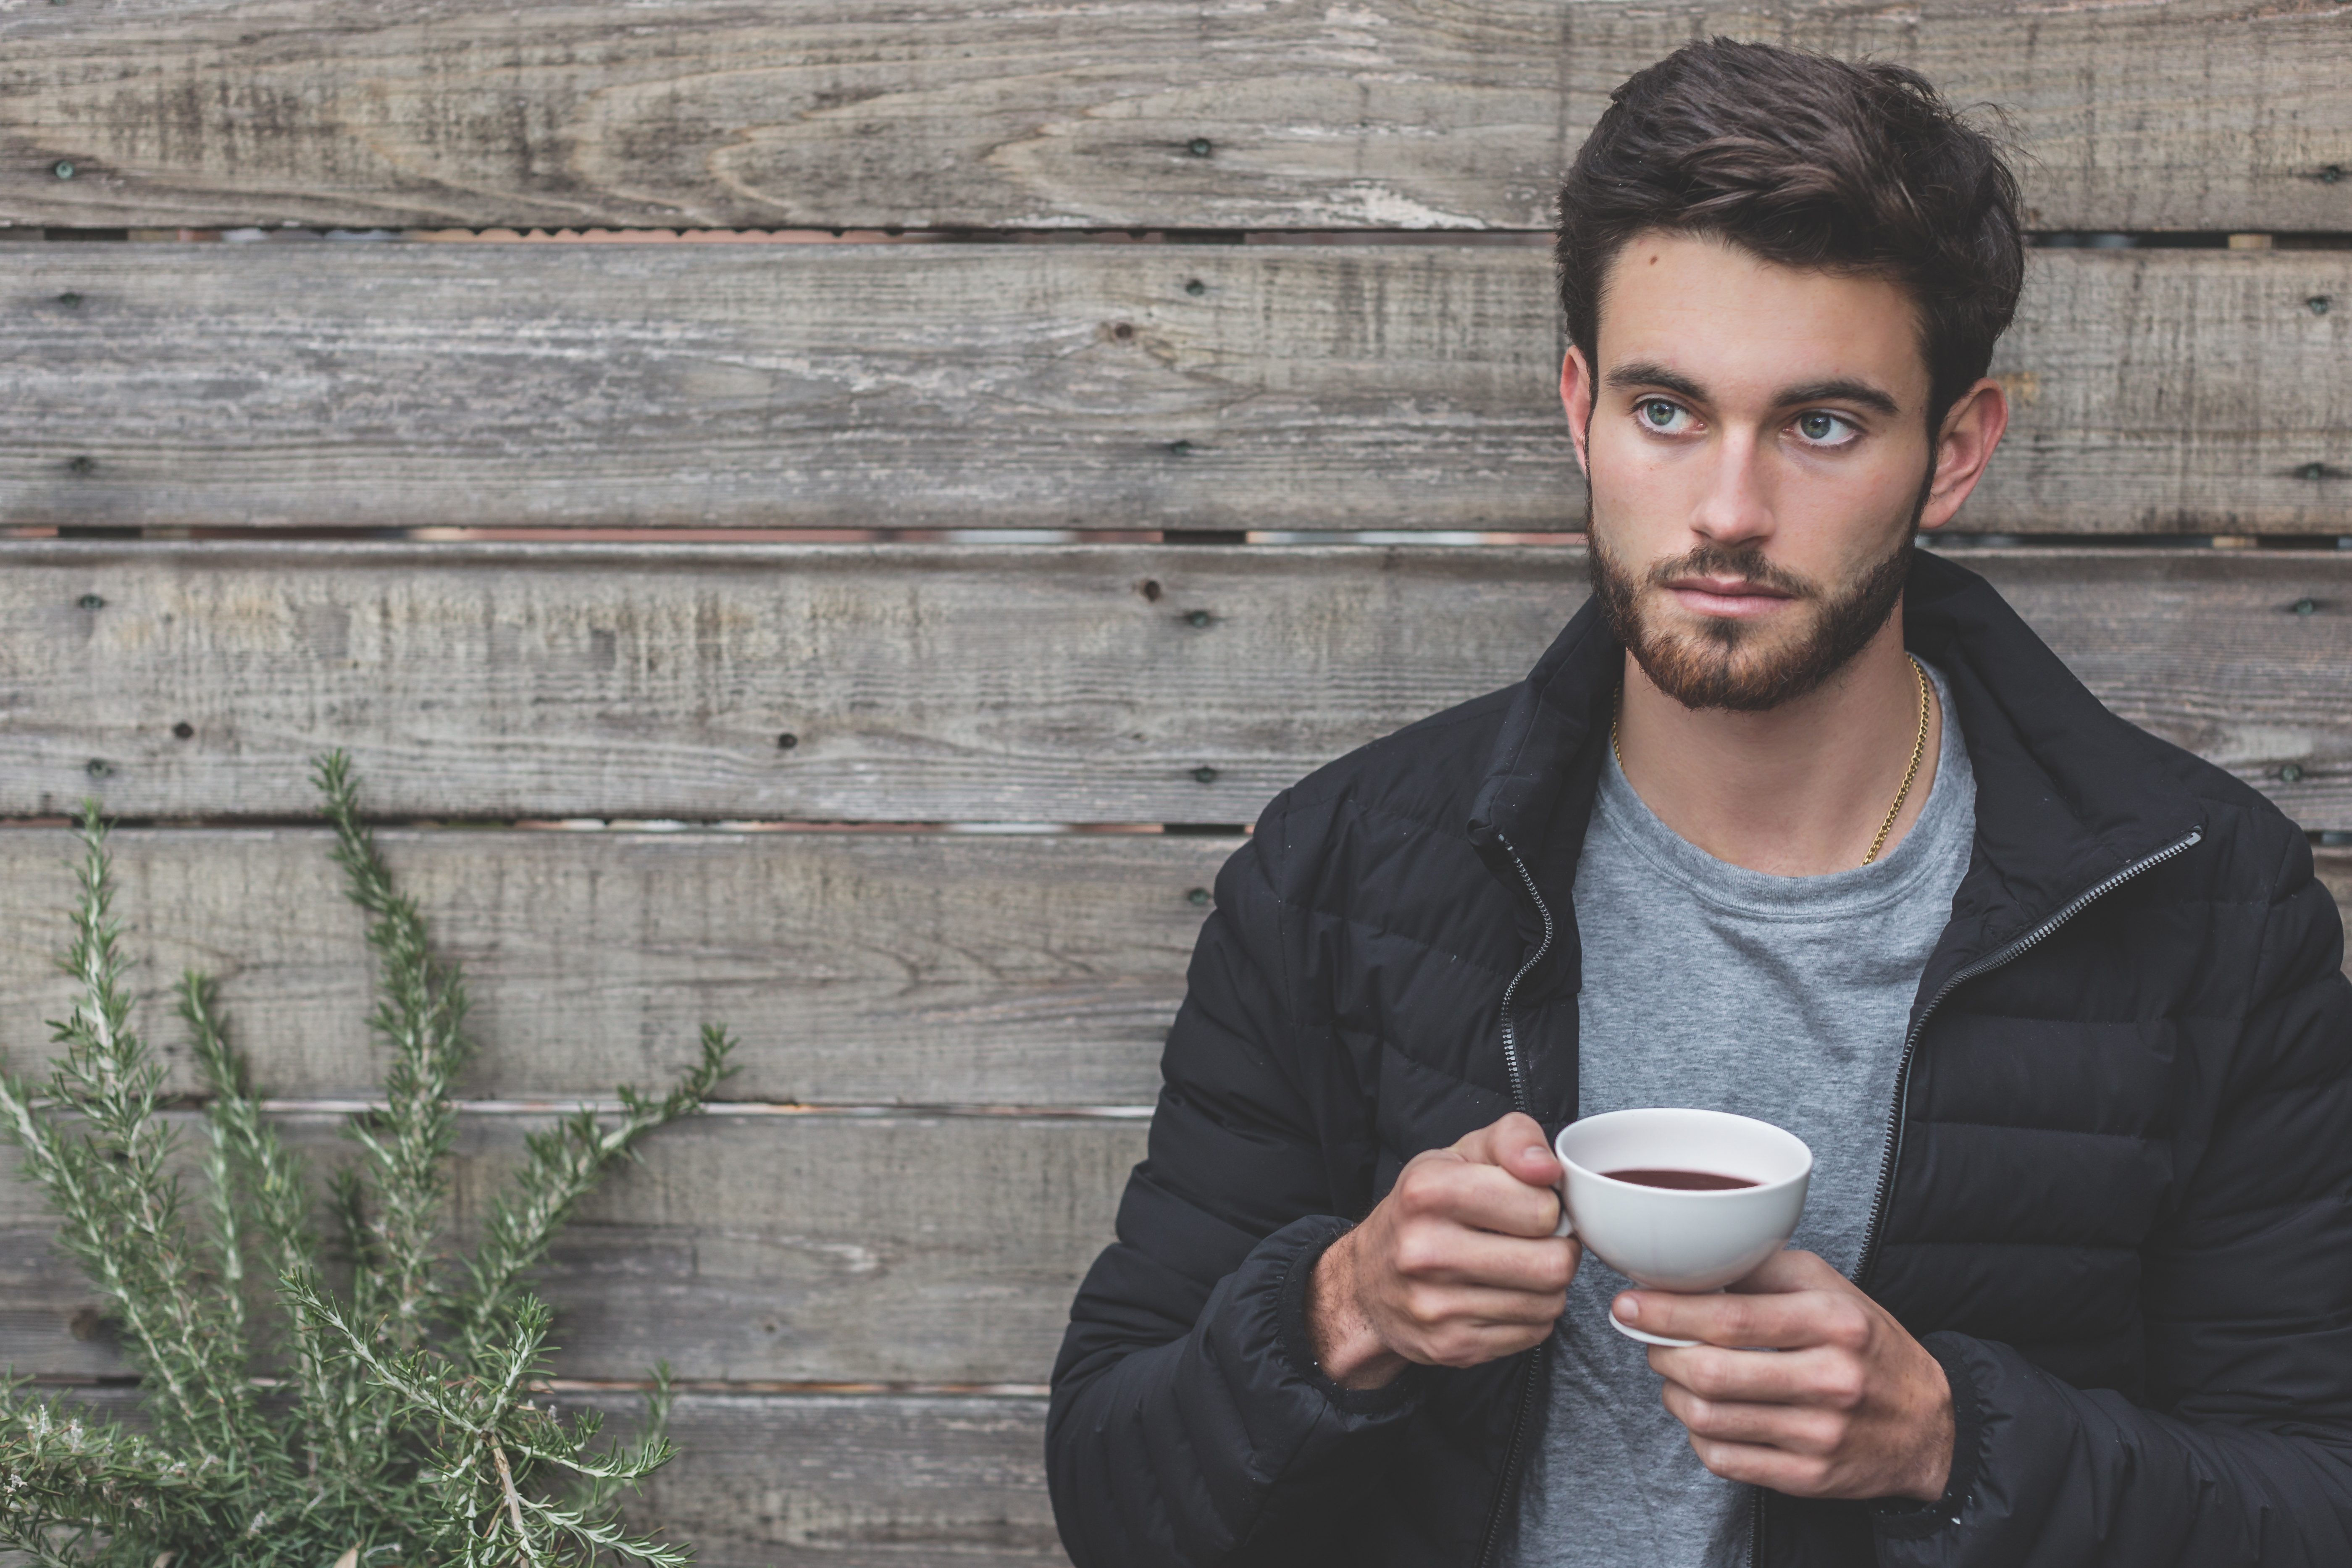 delaware city single gay men Meet single gay men in ellwood city are you looking for a single gay man to be your true love or are you just trying to find a new friend to get to know over a cup of coffee in ellwood city.